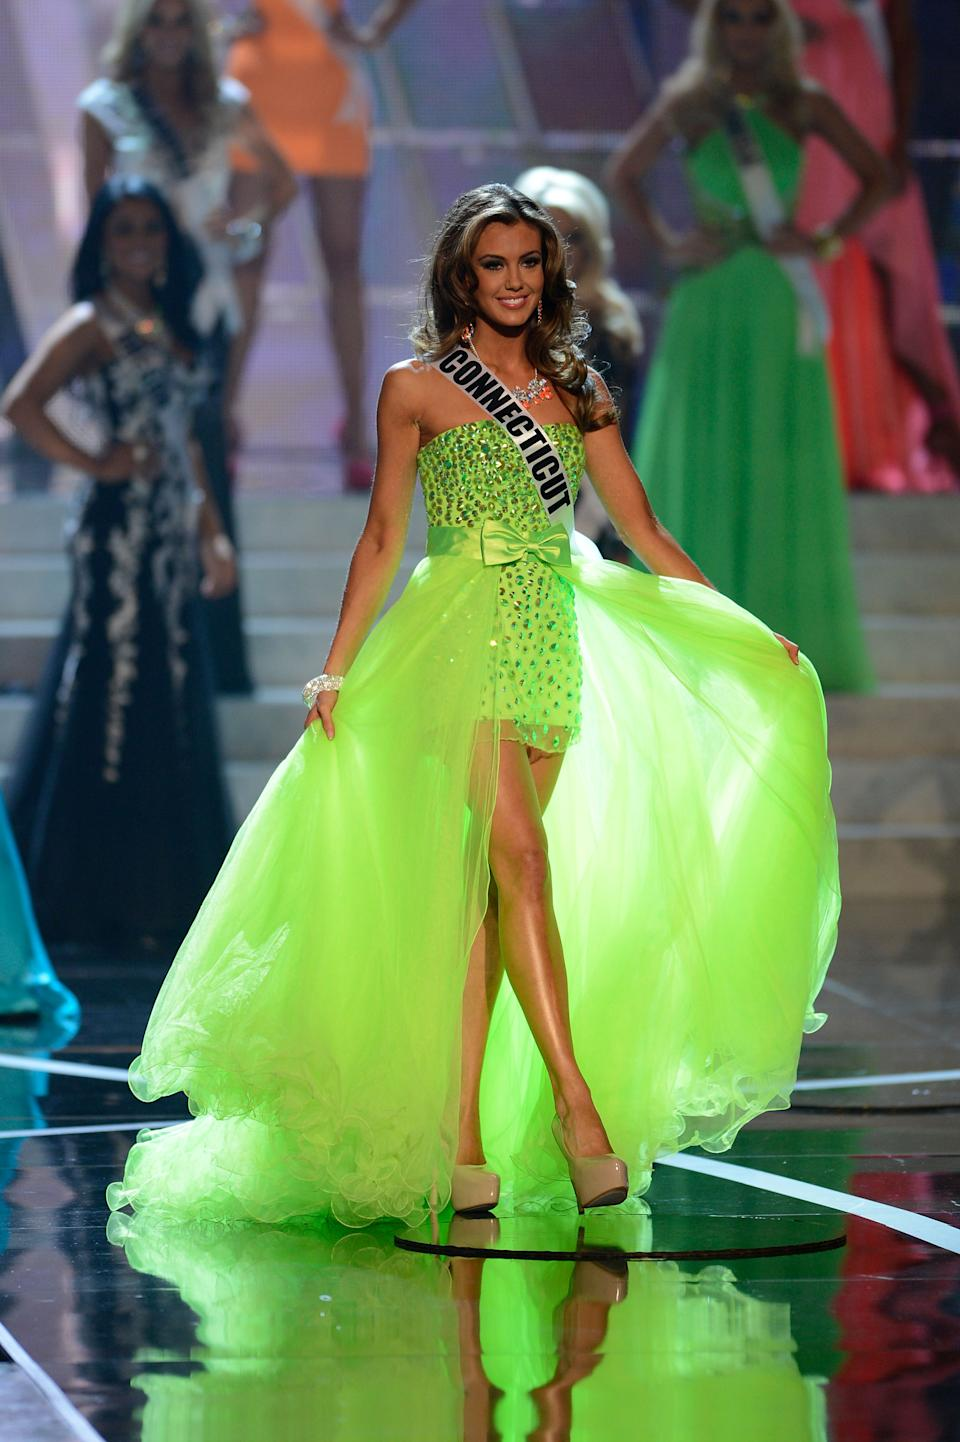 Miss Connecticut, Erin Brady, 26, won the beauty contest Miss USA 2013 in Las Vegas, Sunday, June 16. In the photo, Brady during his presentation at the contest. (AP Photo / Jeff Bottari)